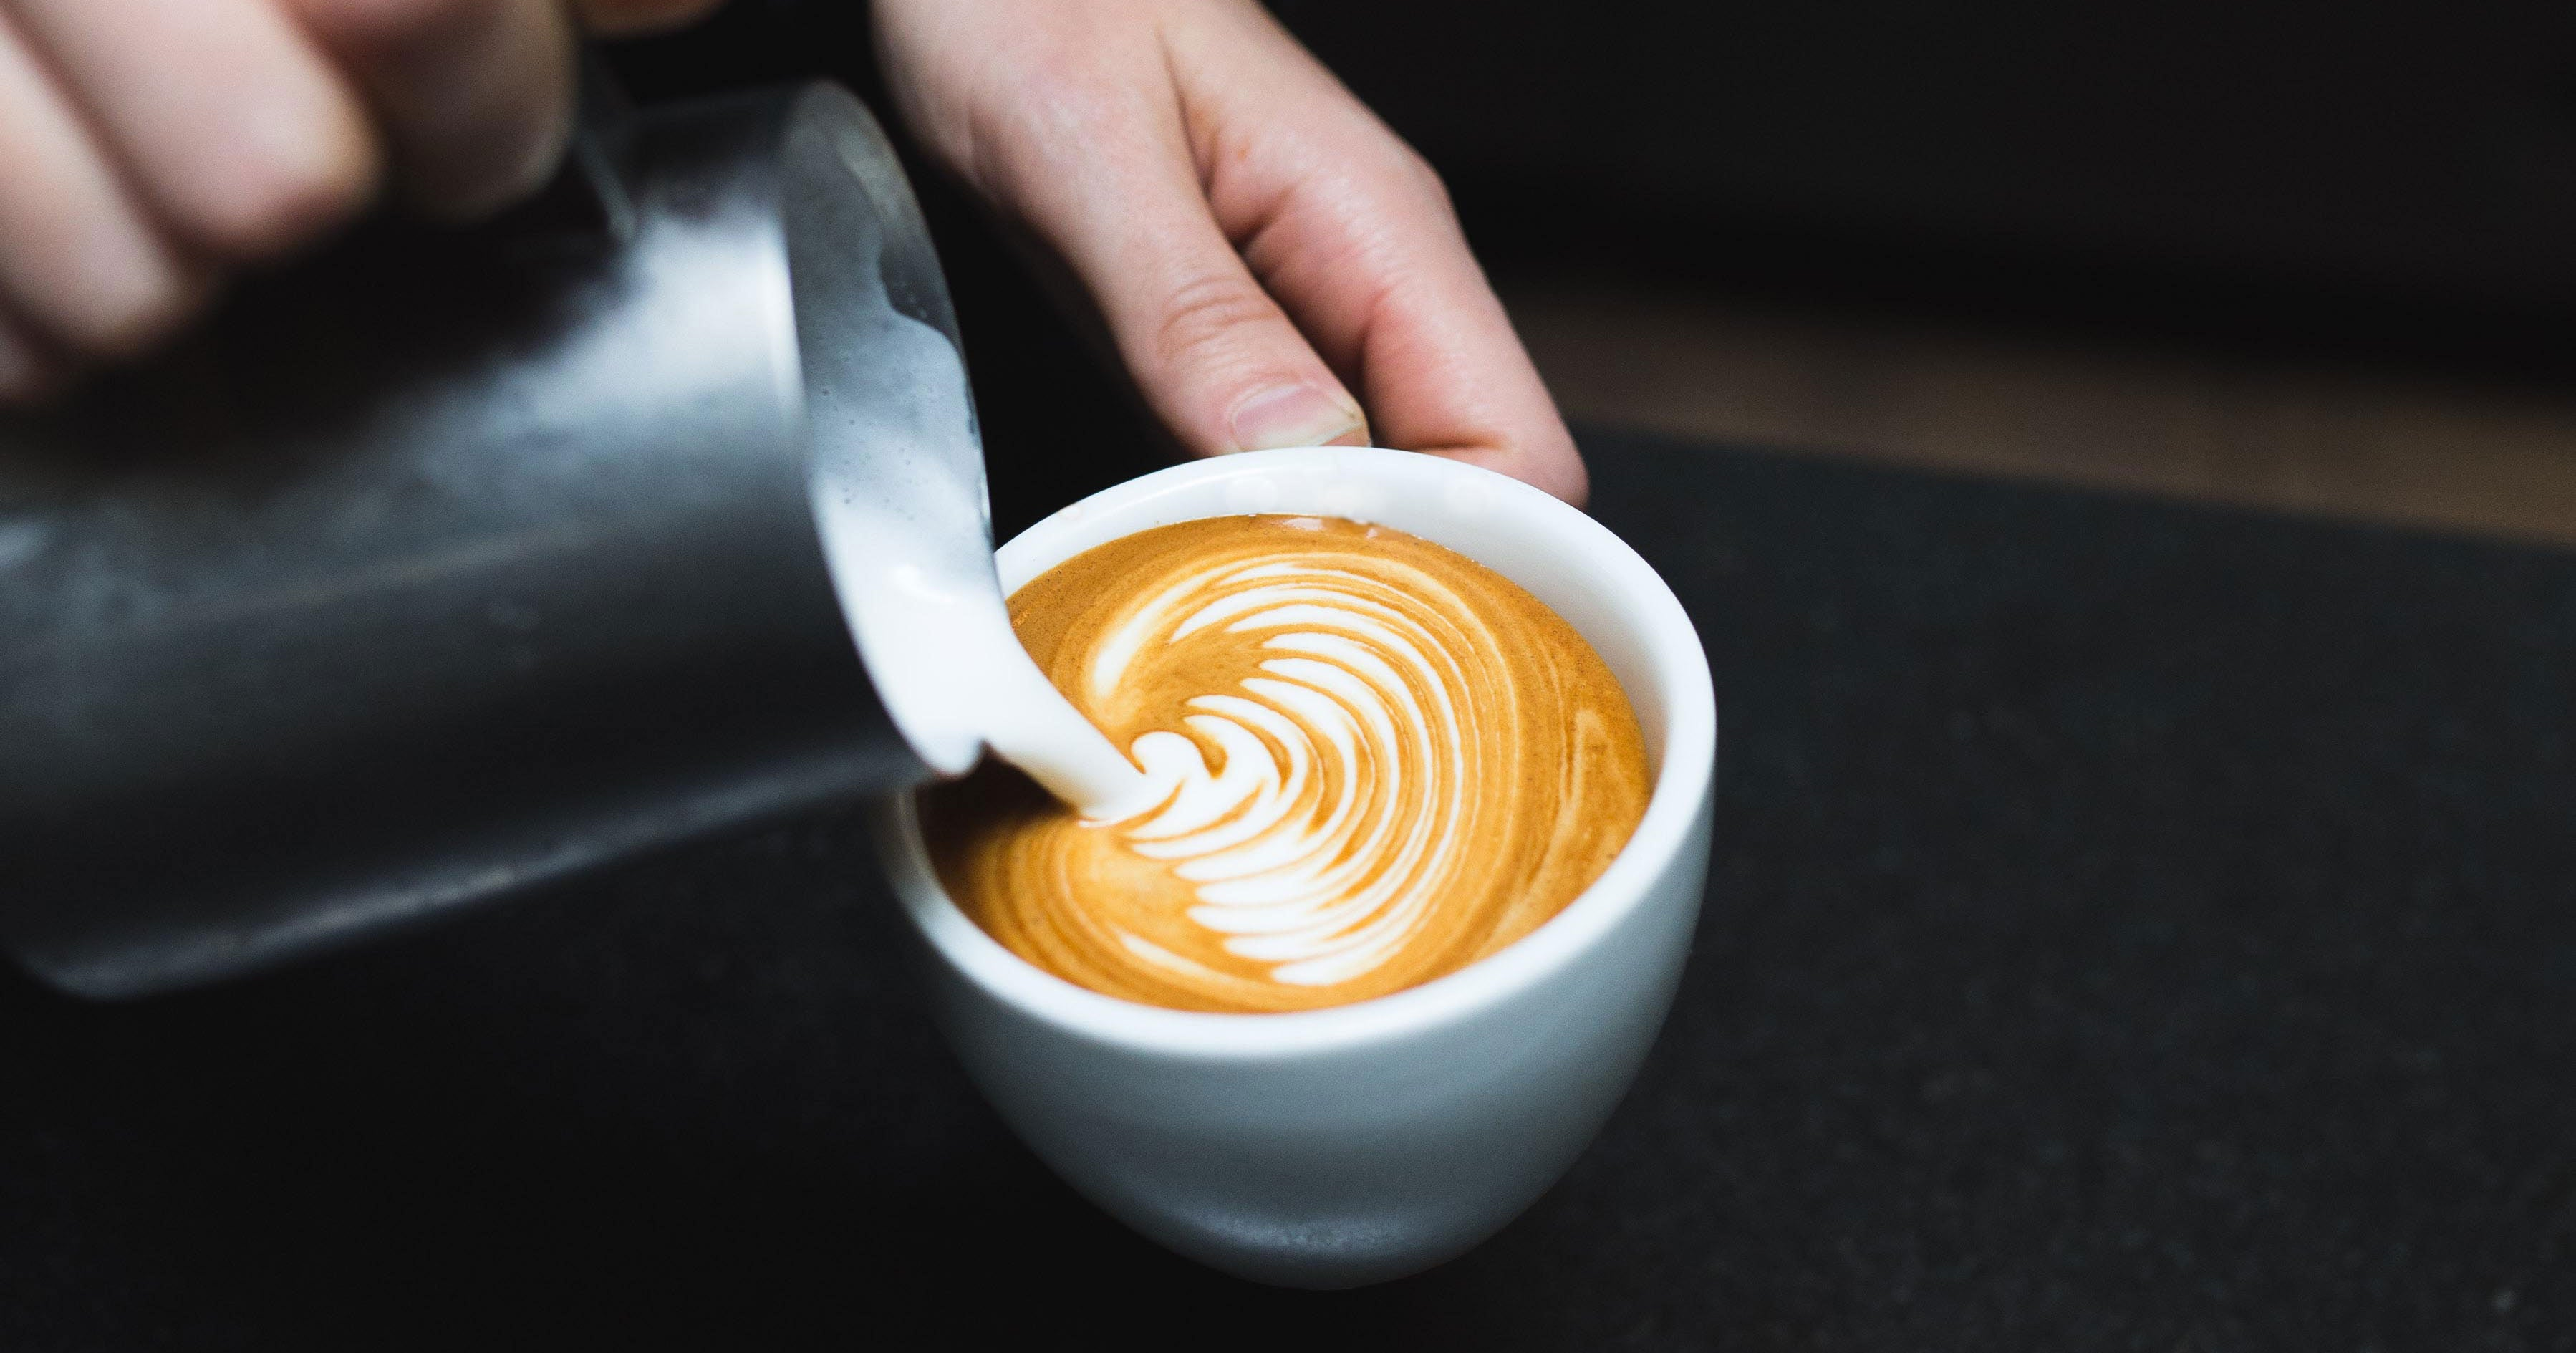 rosetta latte art being poured into a white cup